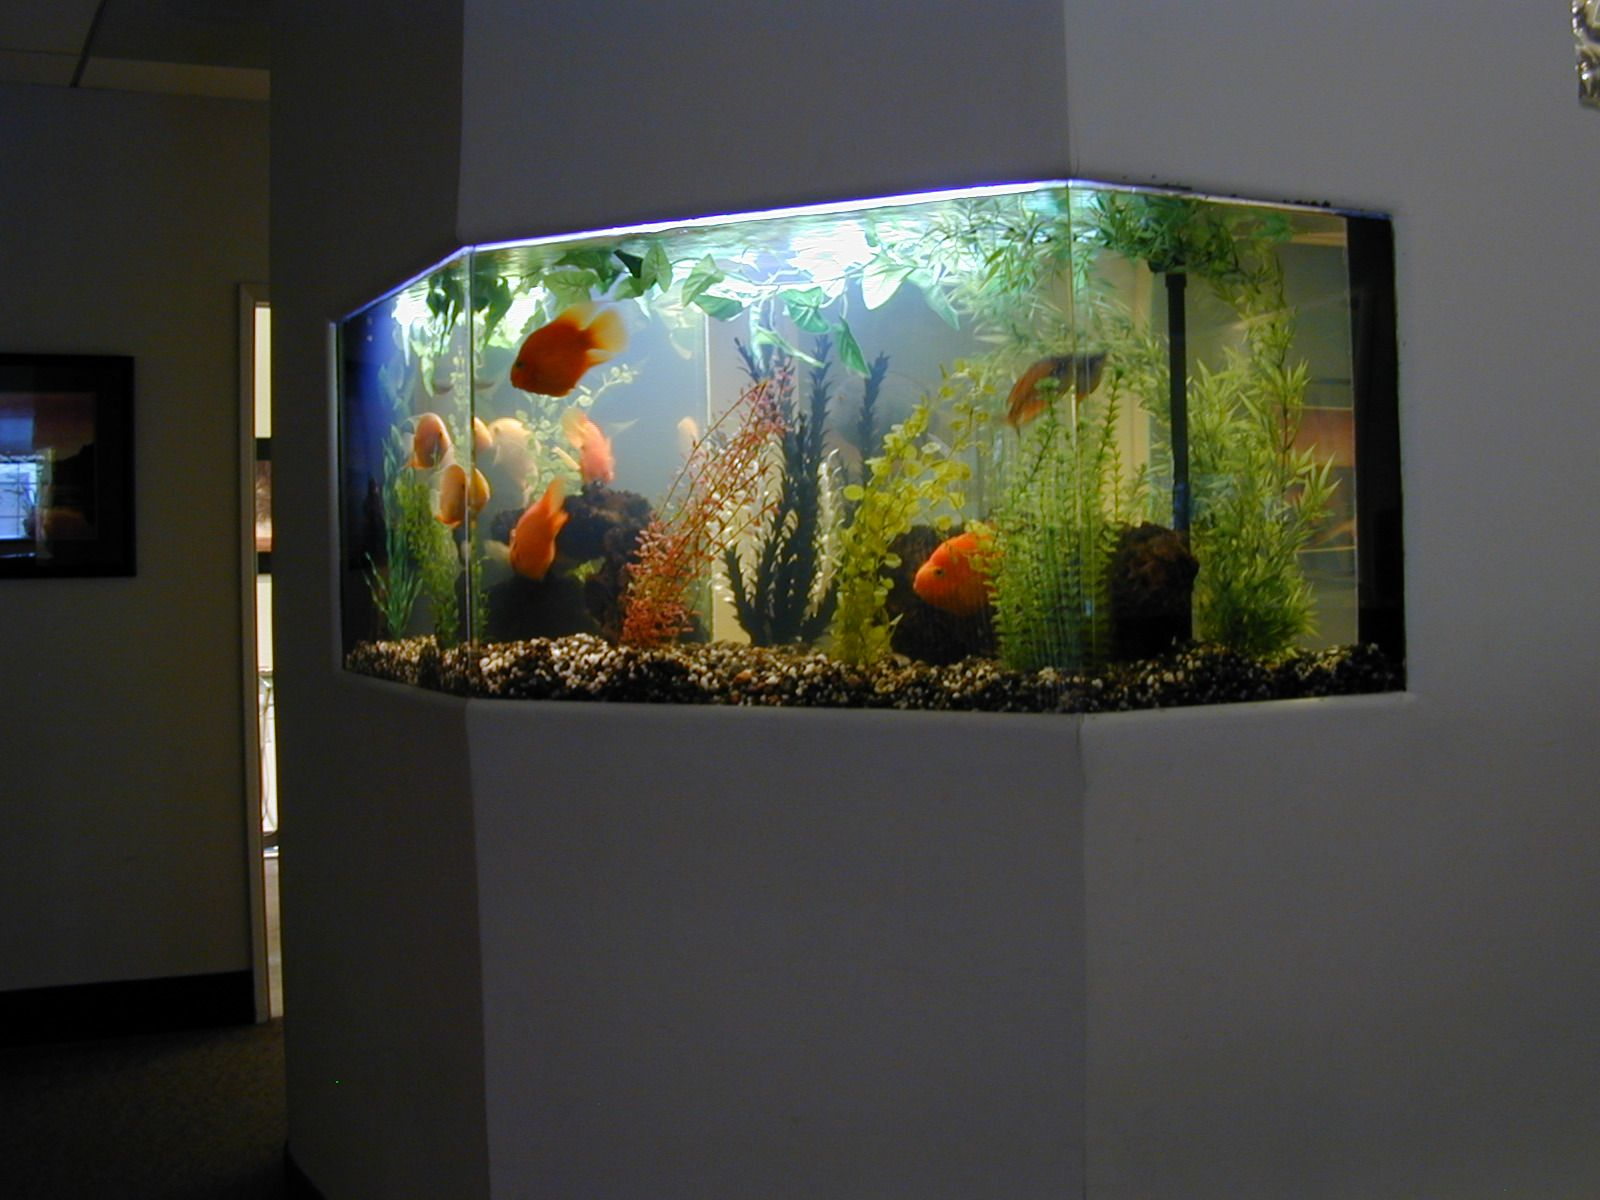 Fish aquarium is good in home - Transform The Way Your Home Looks Using A Fish Tank